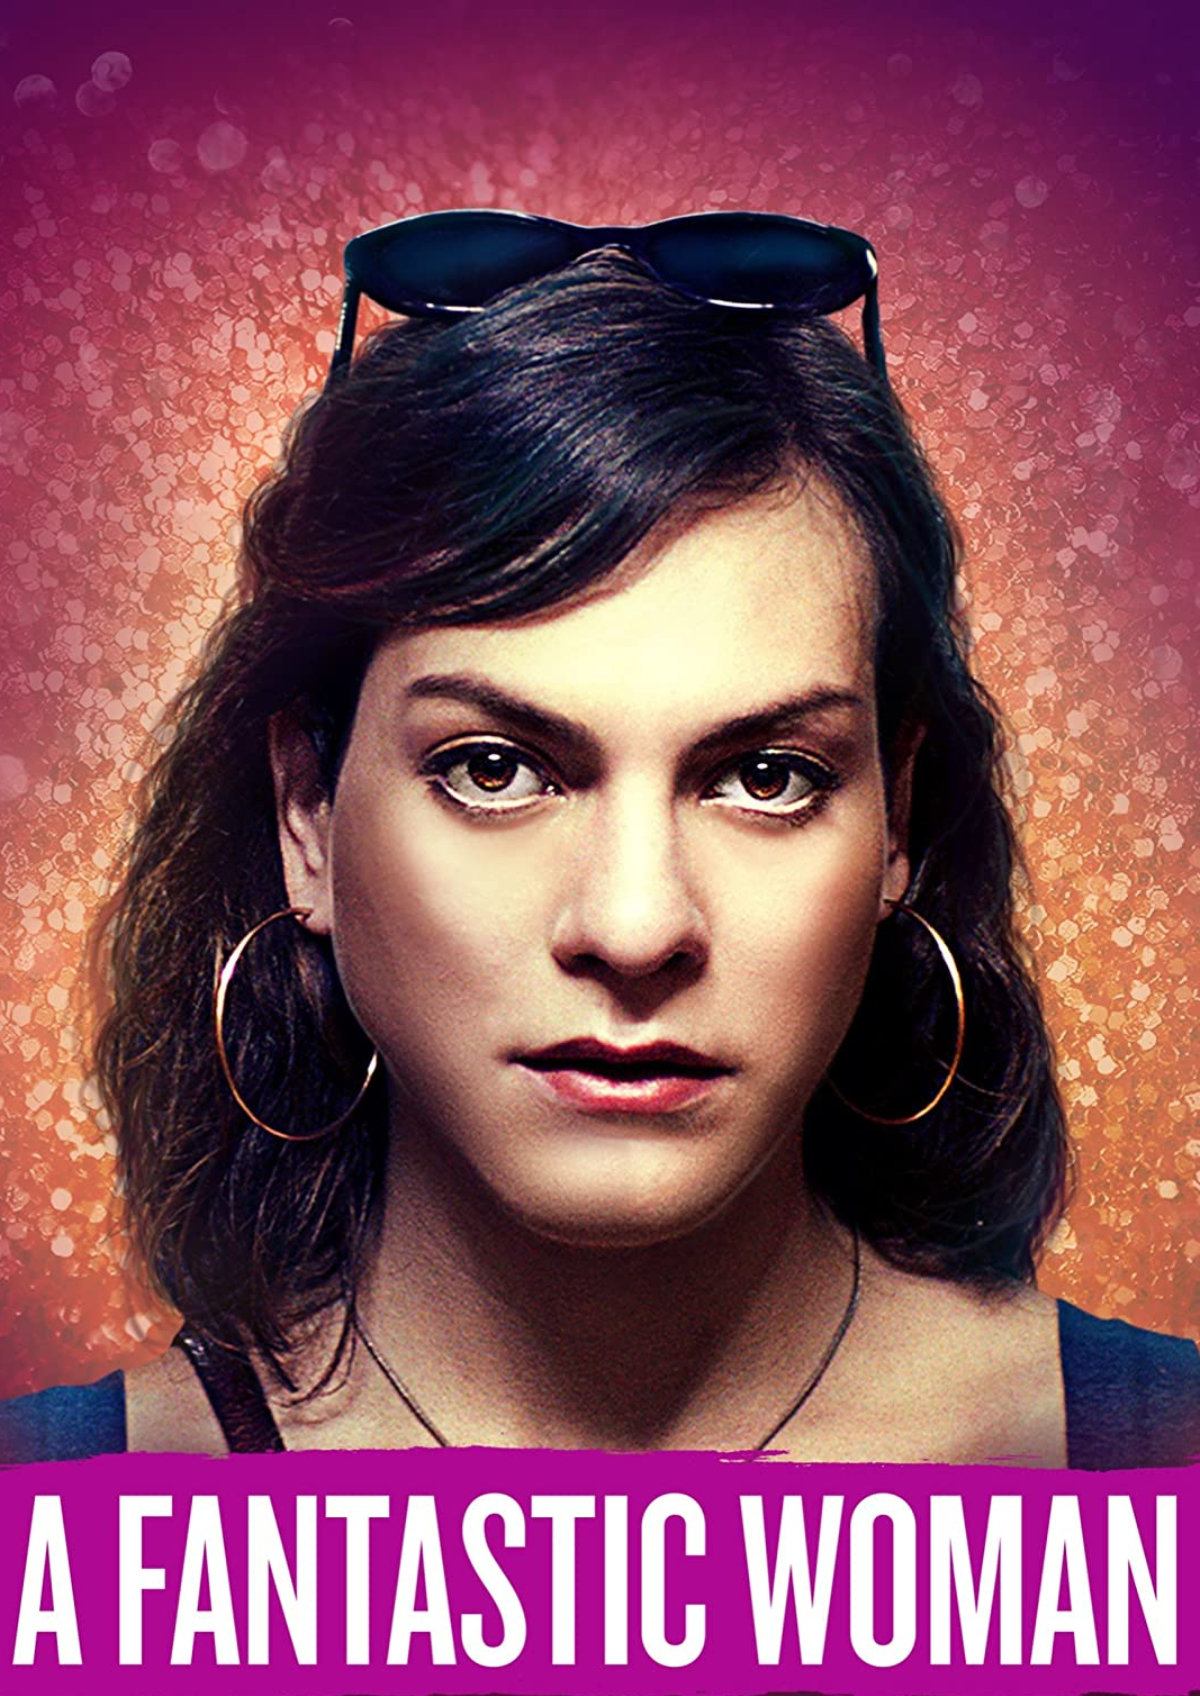 'A Fantastic Woman' movie poster